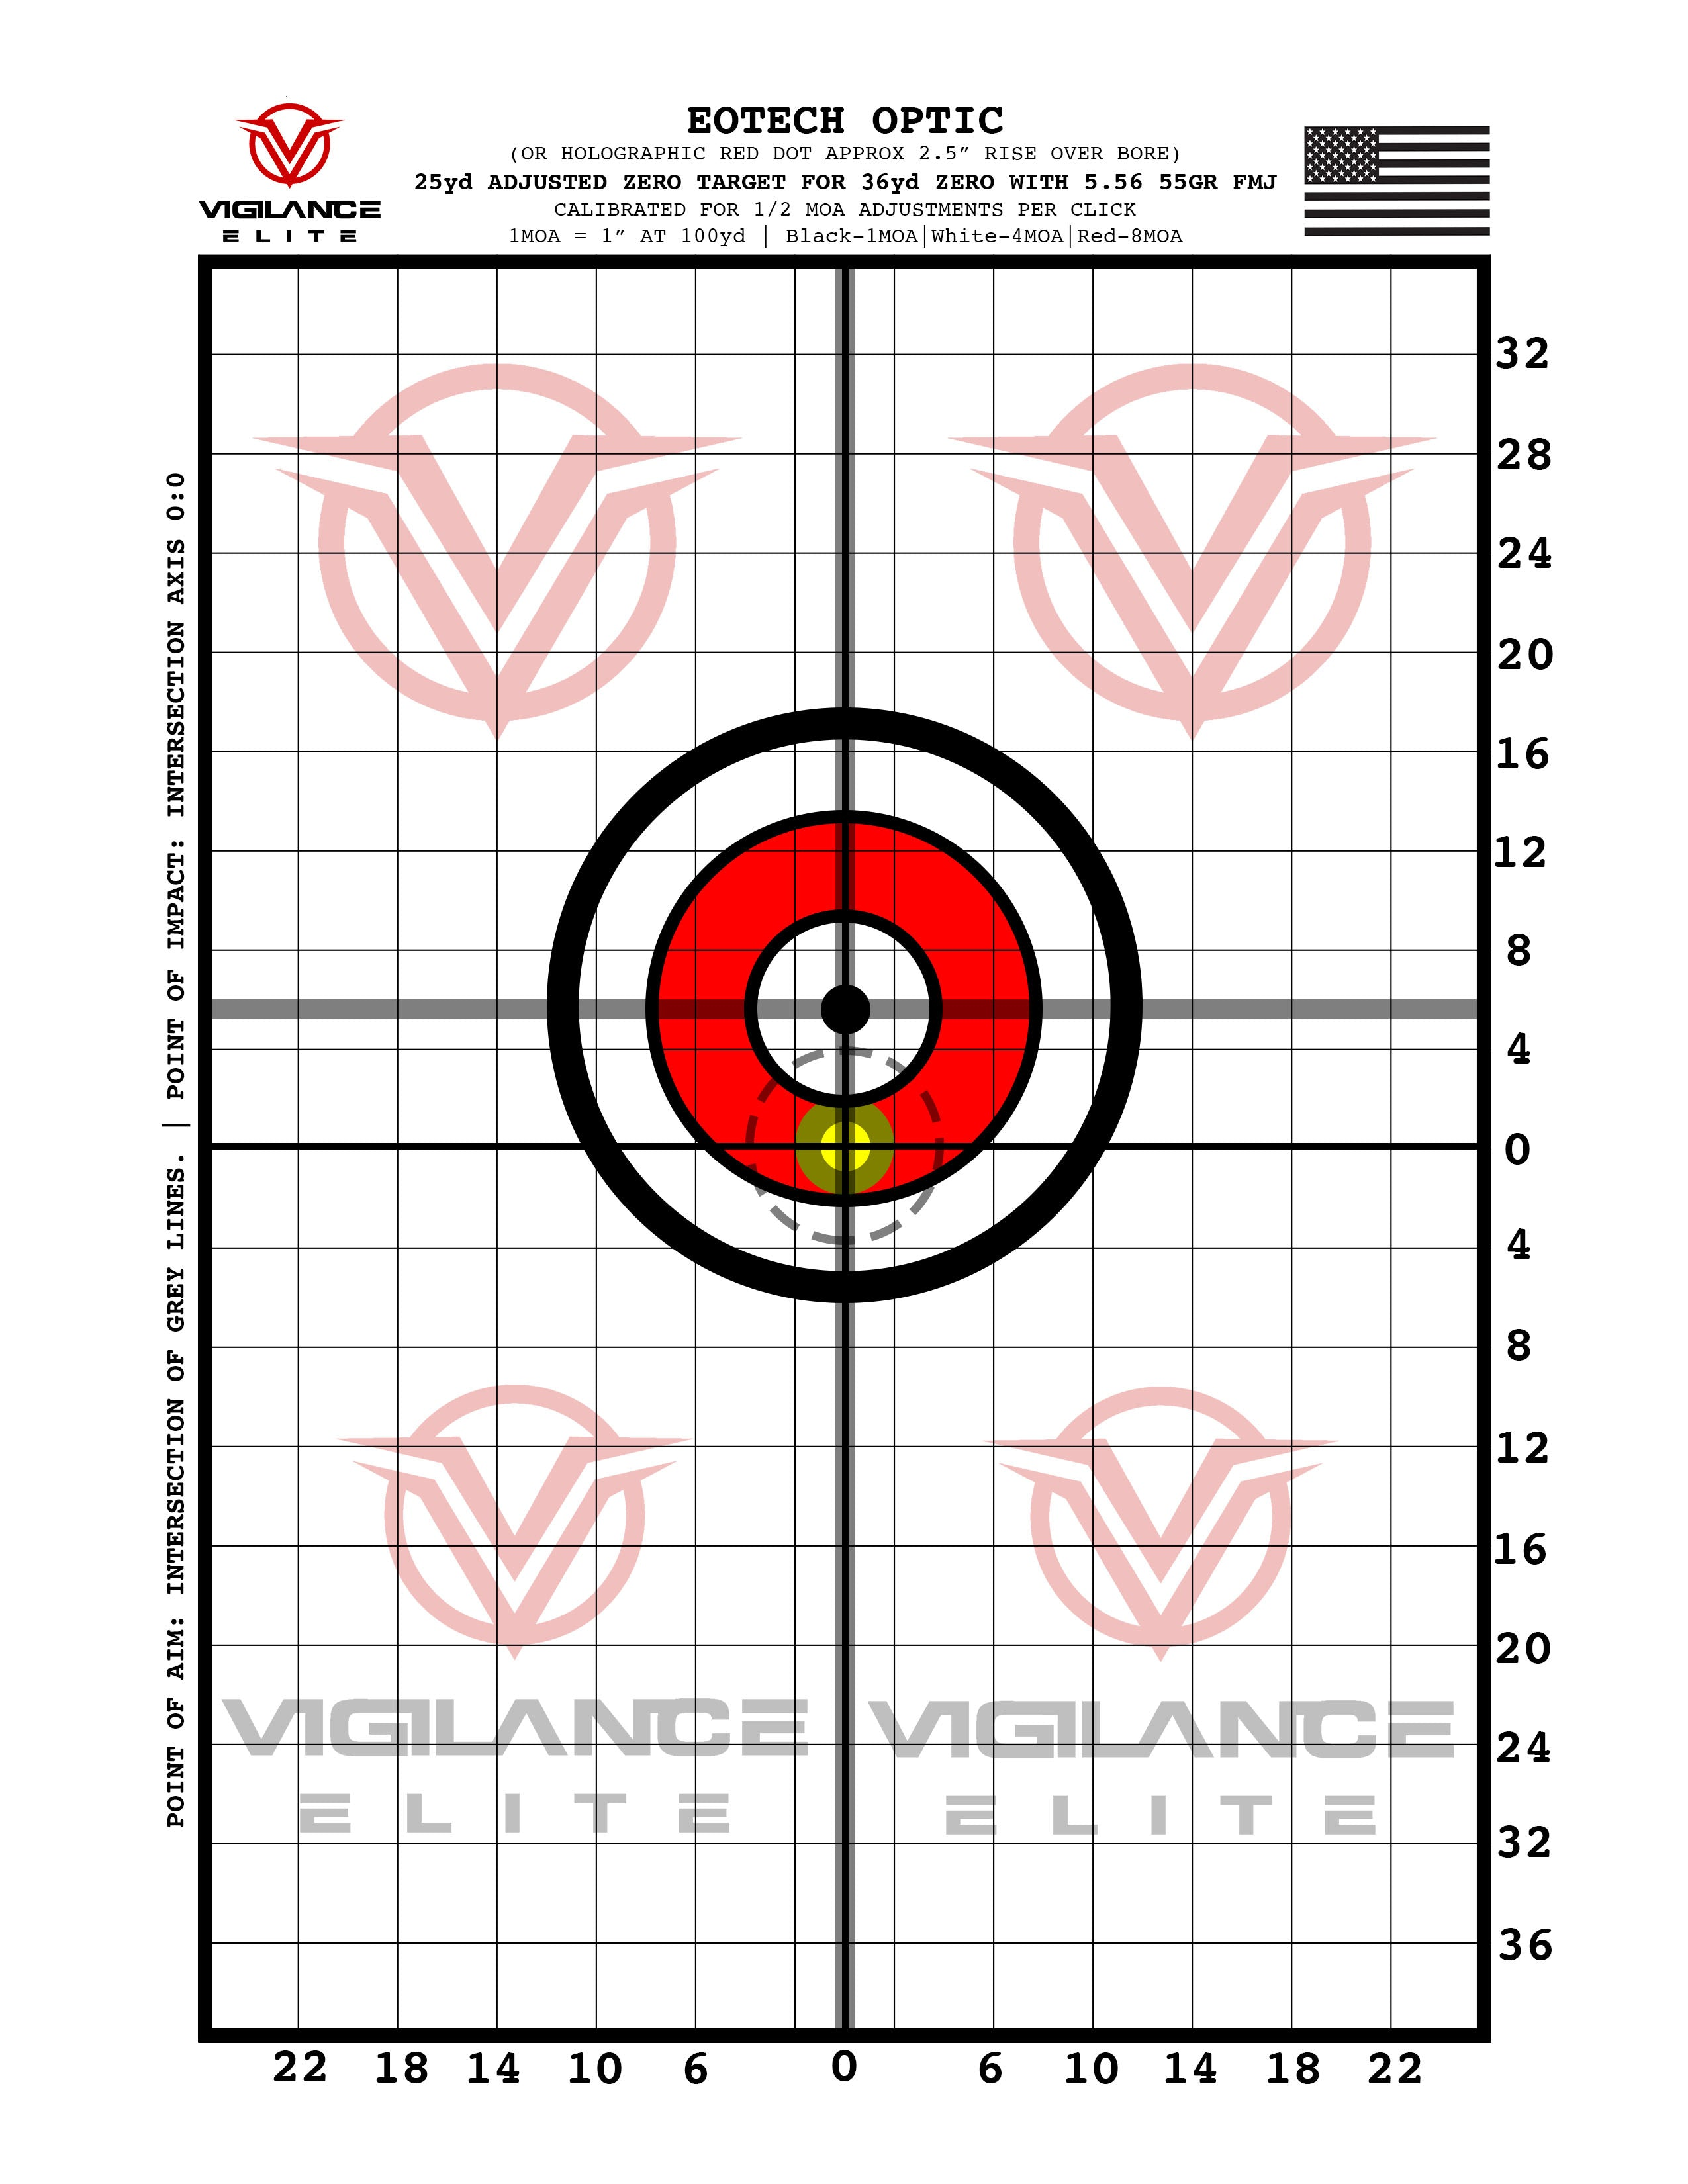 graphic regarding Printable Sight in Targets titled The 36 Backyard Zero Vigilance Elite